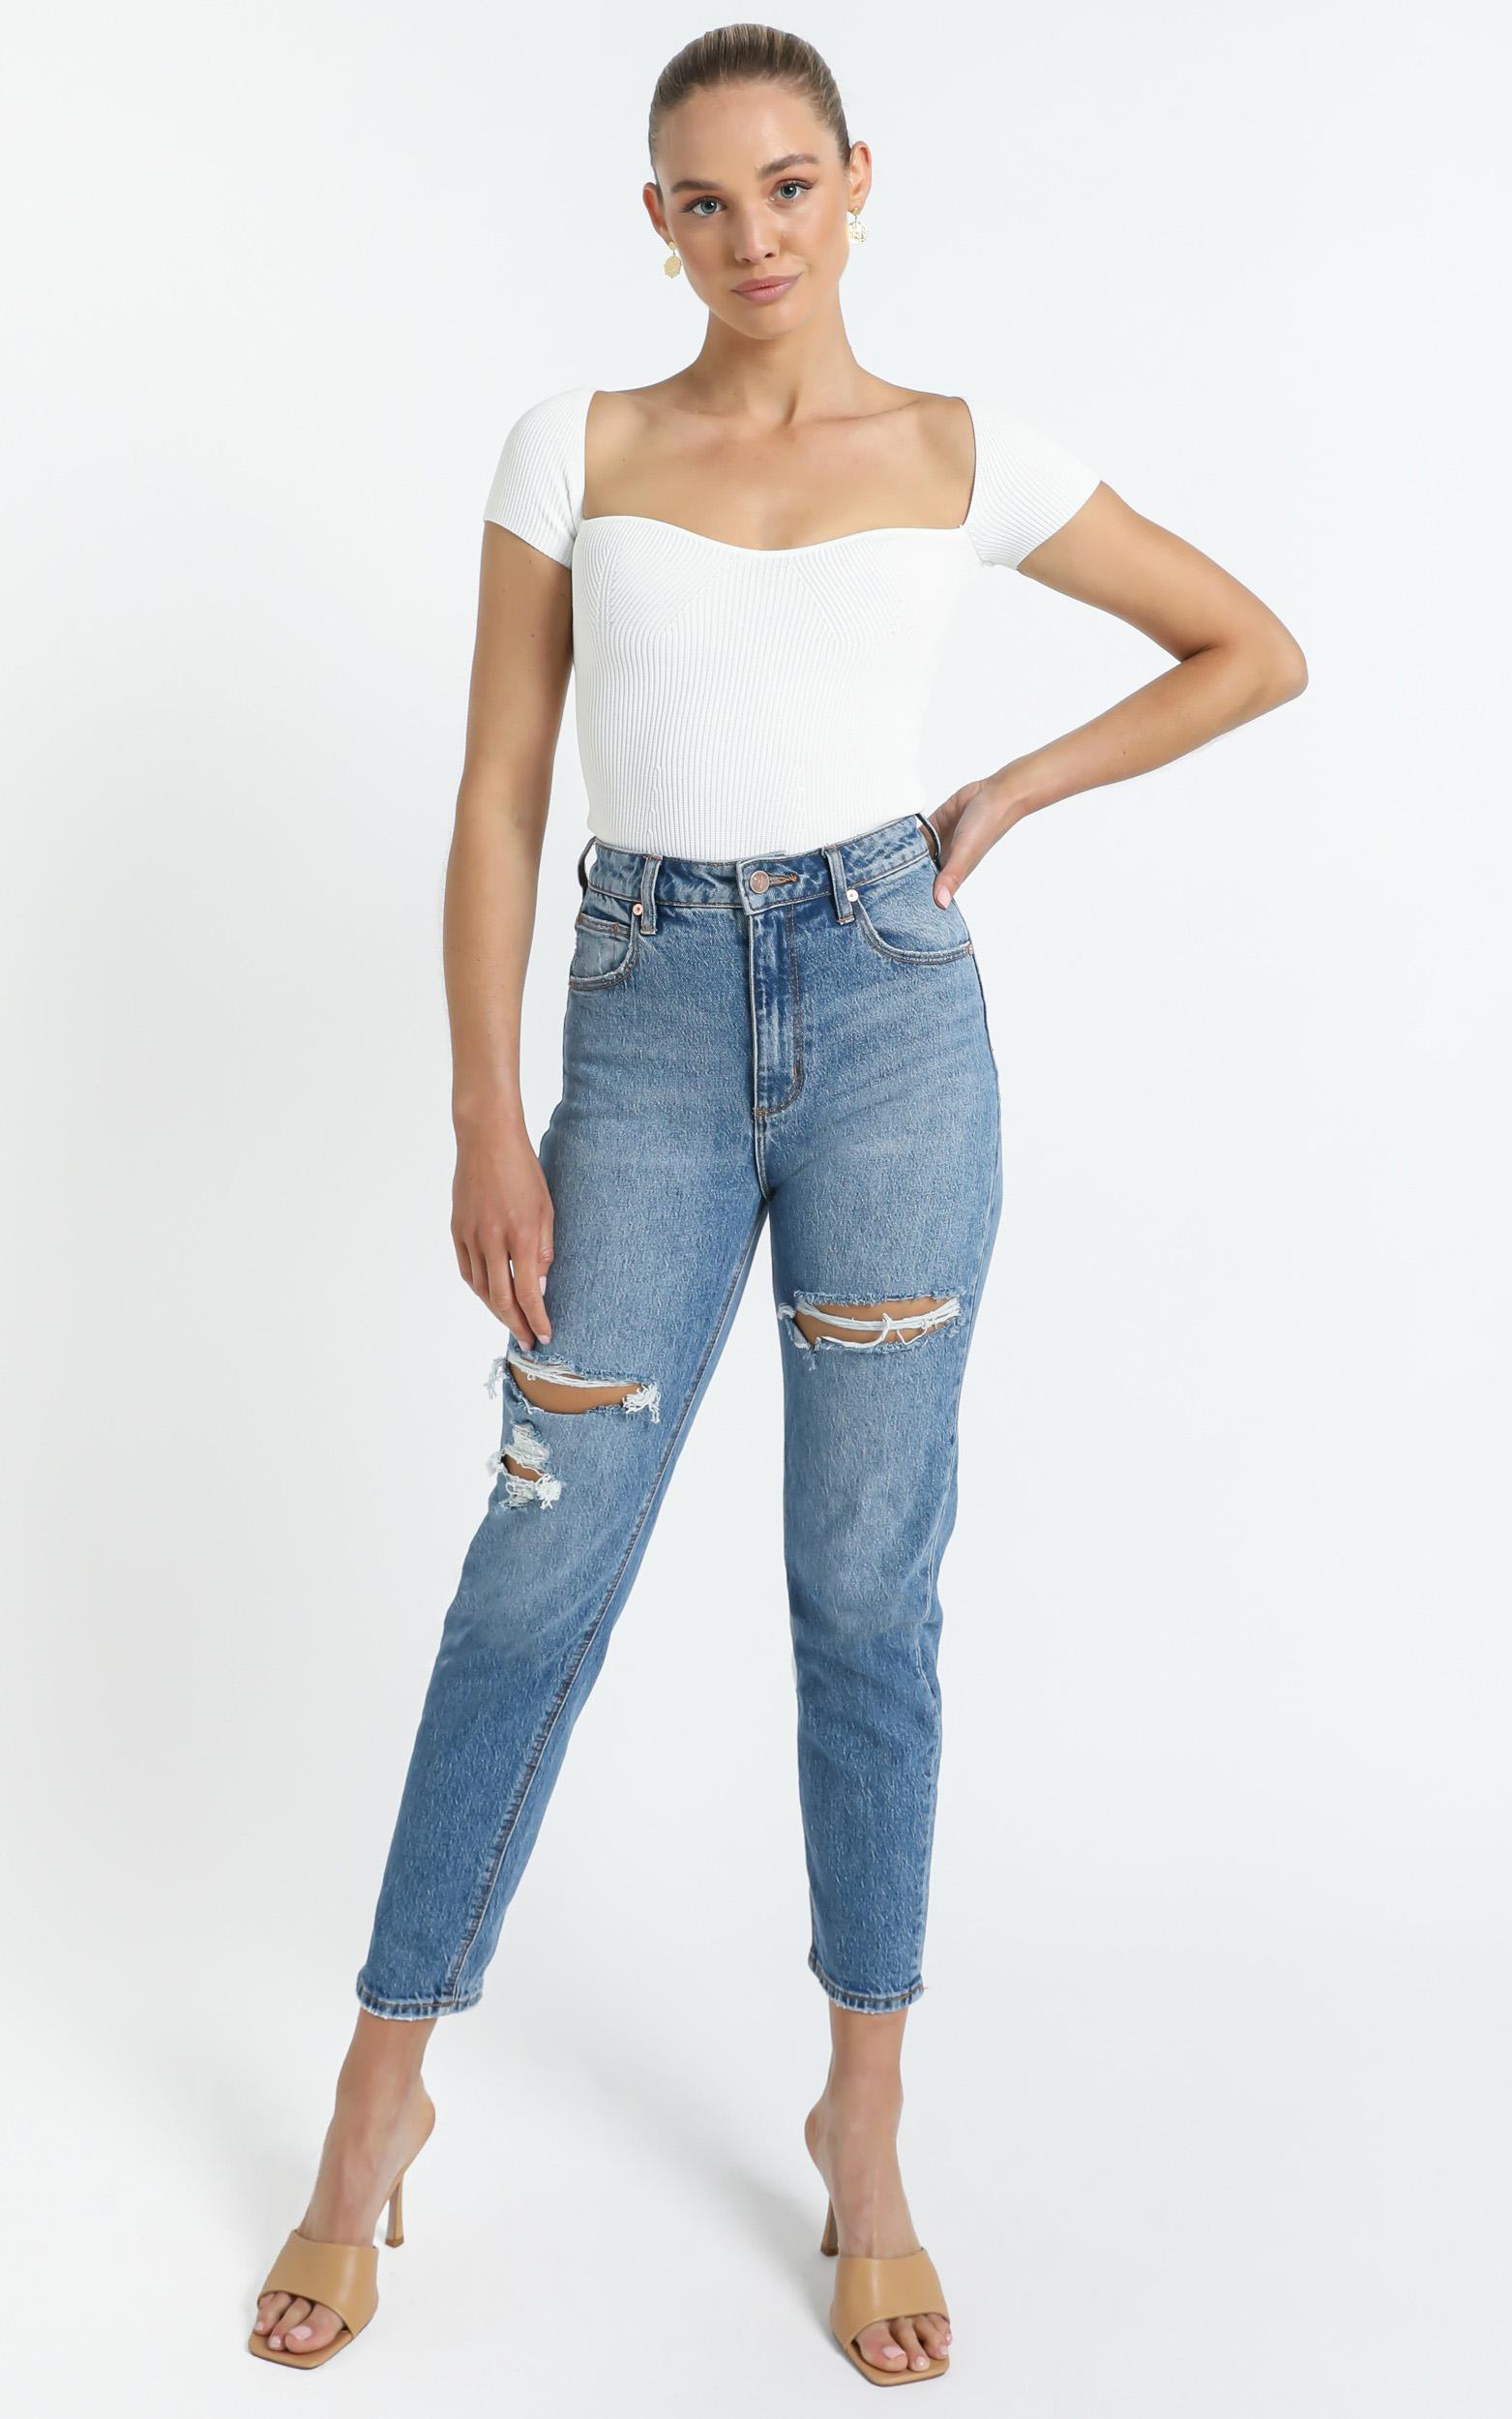 Marisa Knit Top in White - 12 (L), White, hi-res image number null